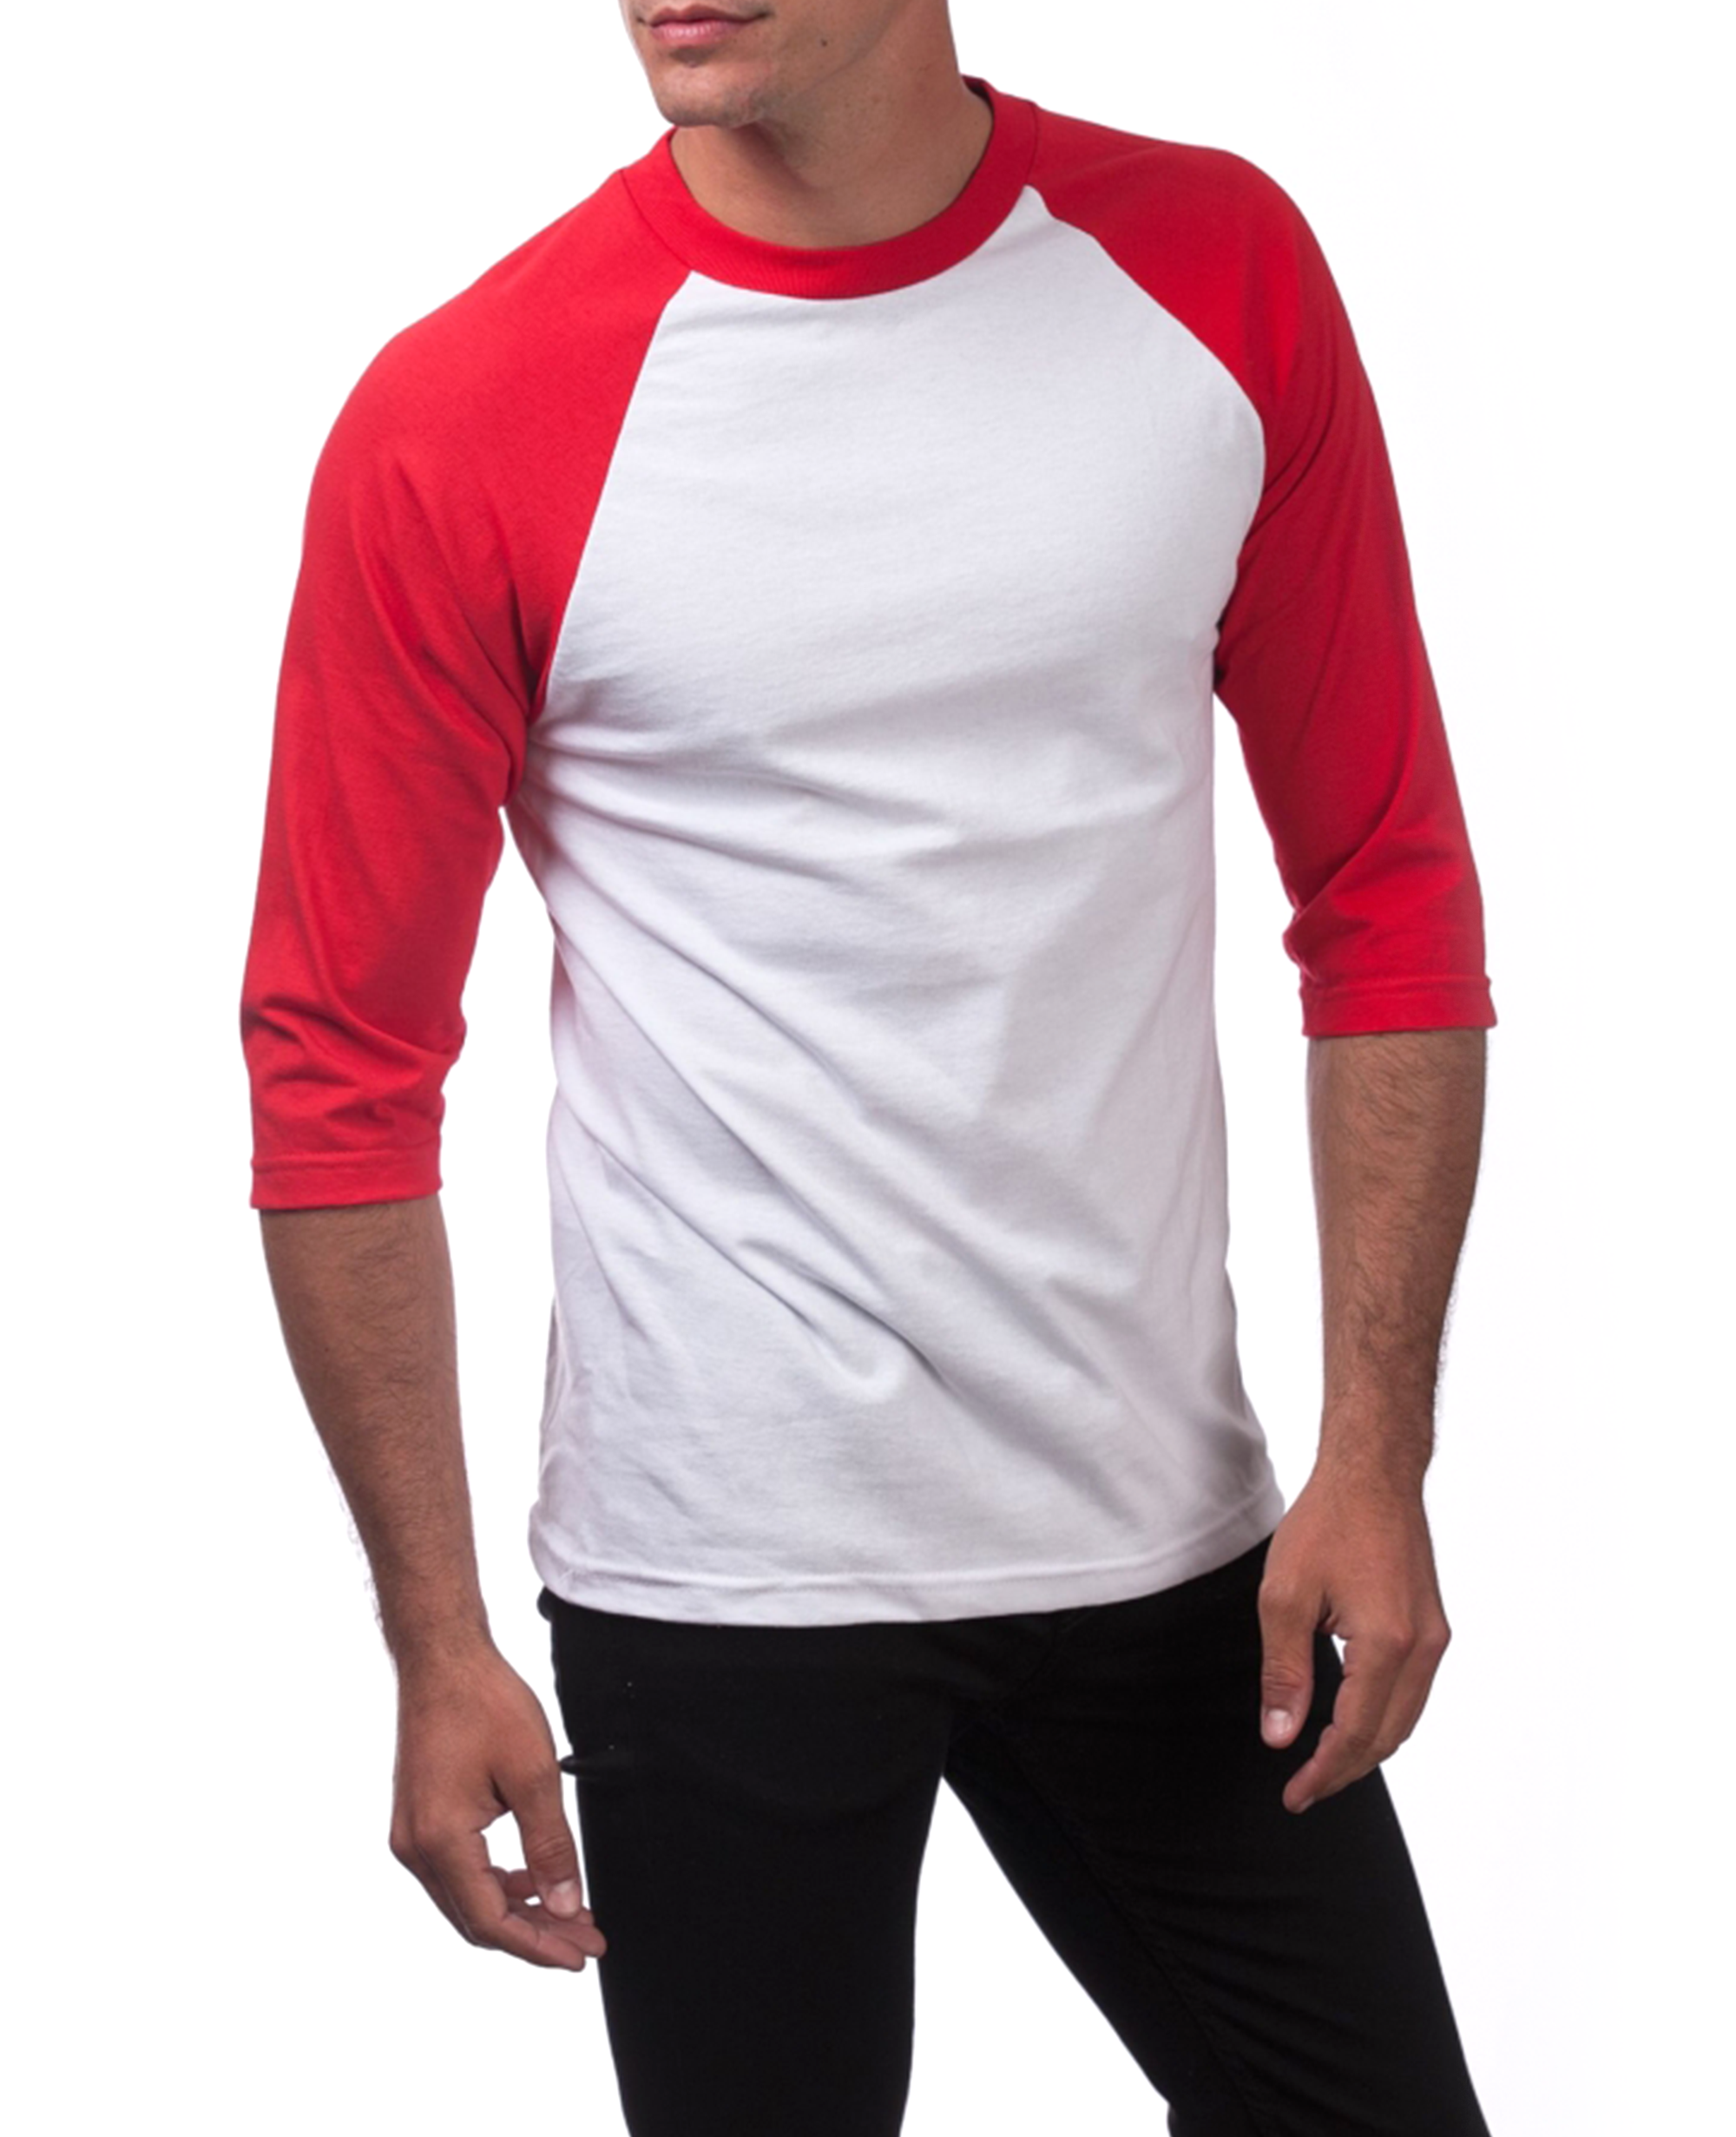 Raglan Baseball T-shirt in White / Red - T-Shirts - Pro Club - BRANMA